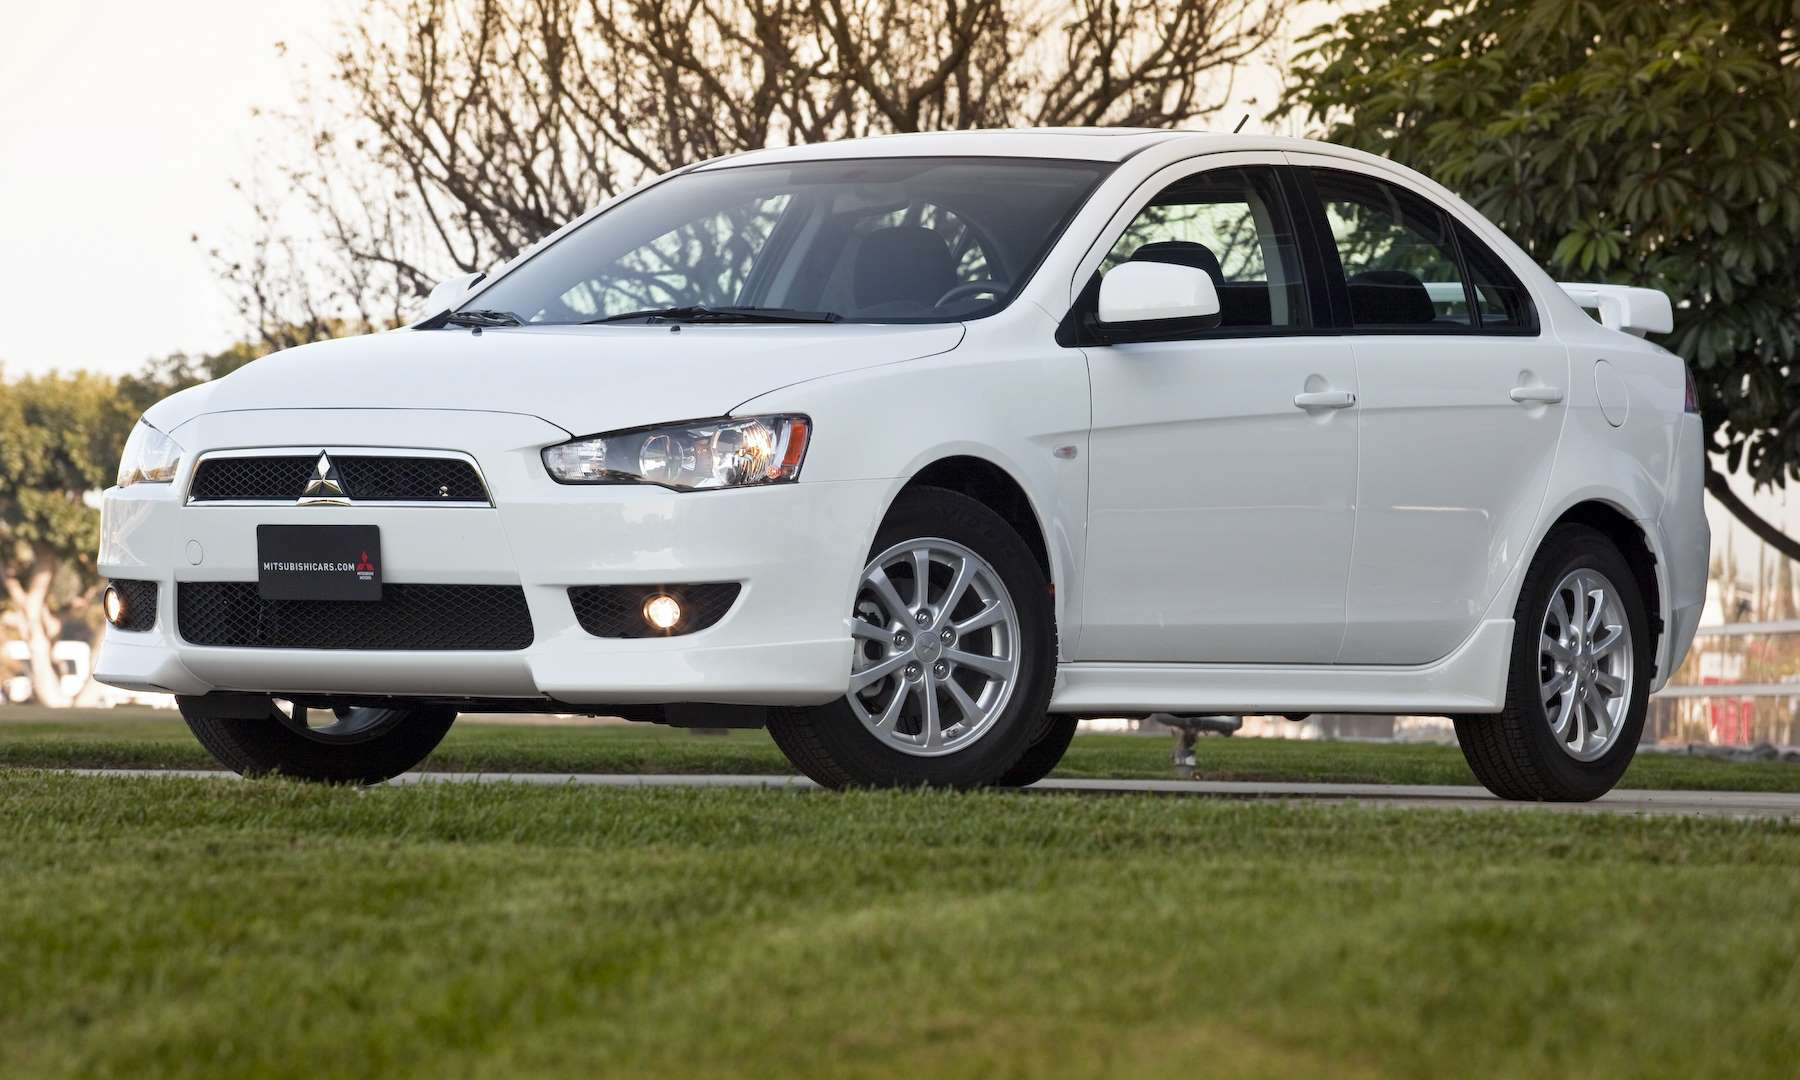 ? Mitsubishi Motors North America, Inc.